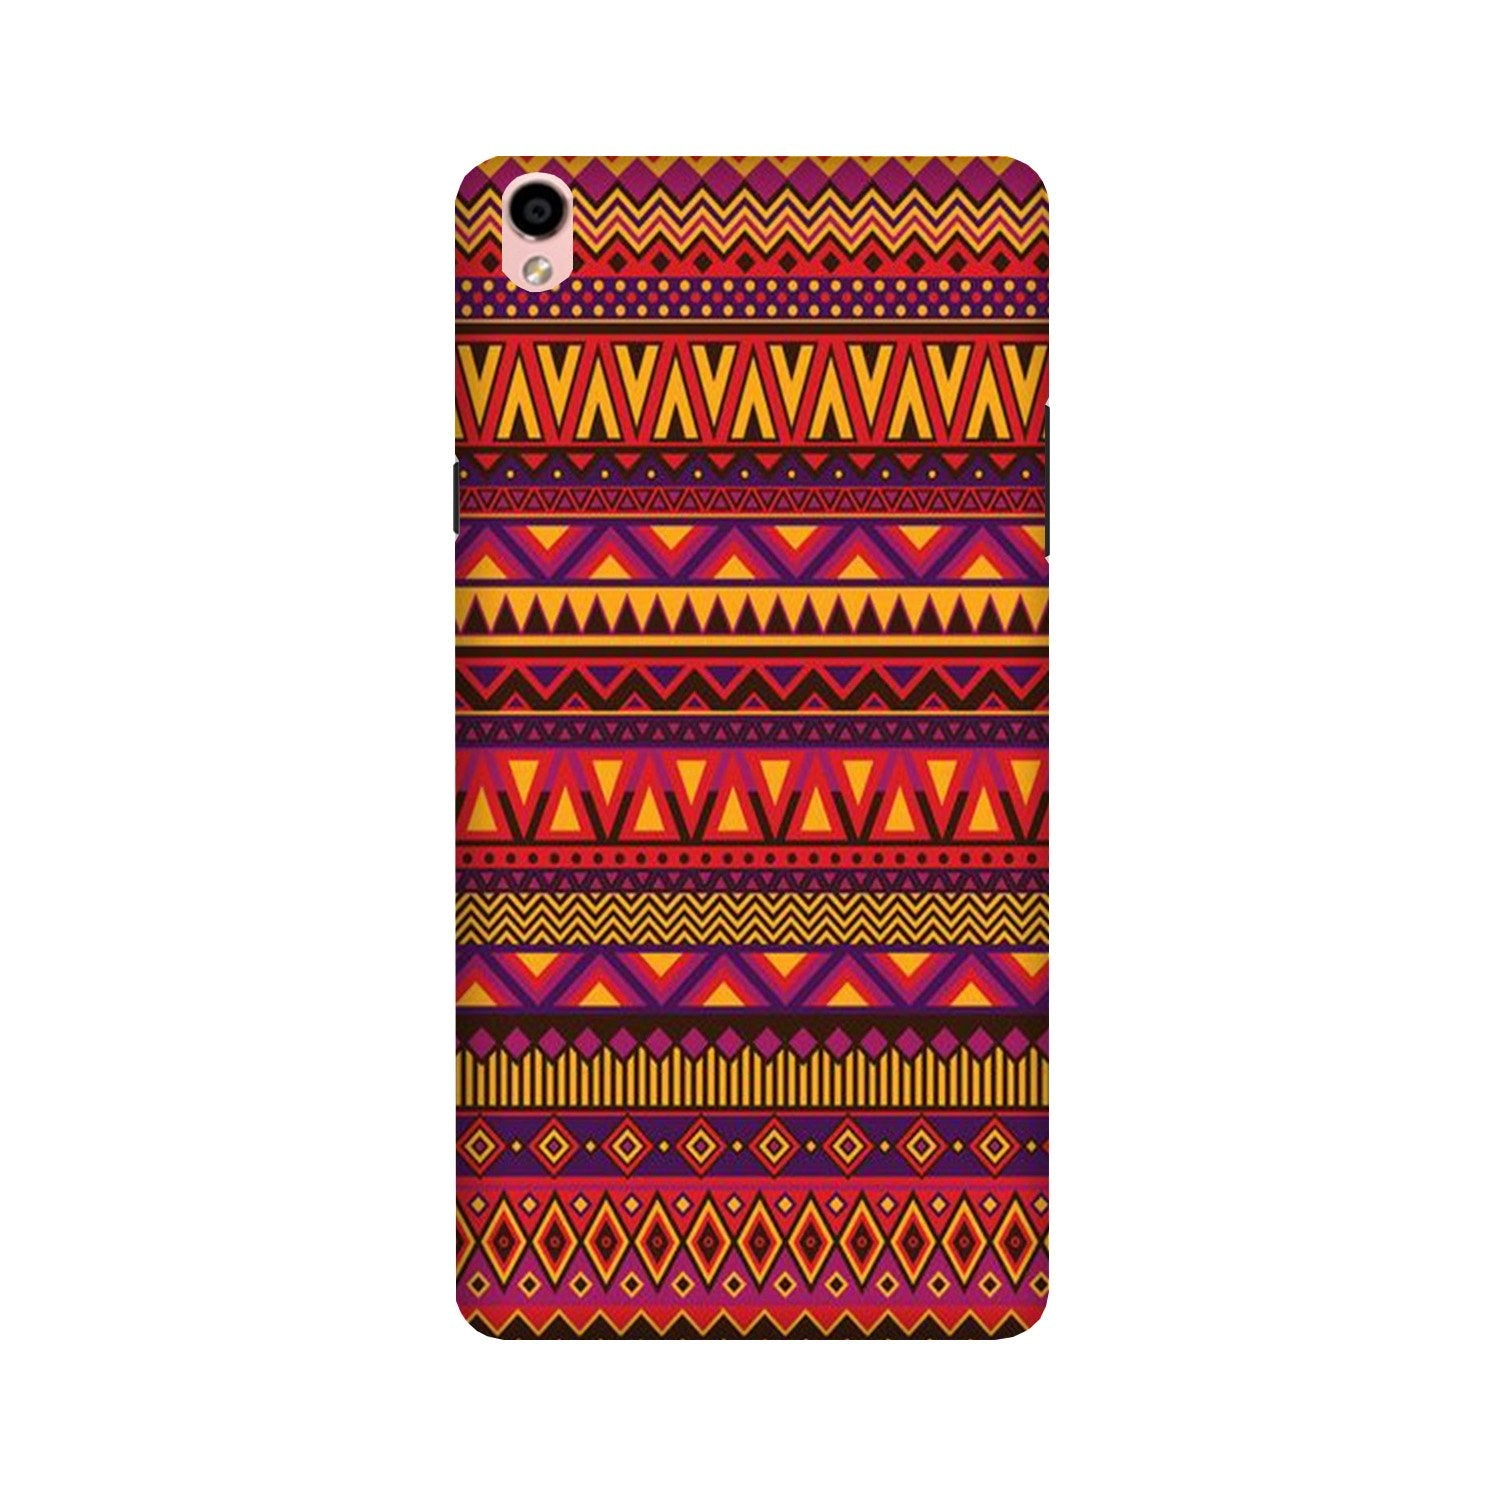 Zigzag line pattern2 Case for Oppo F1 Plus